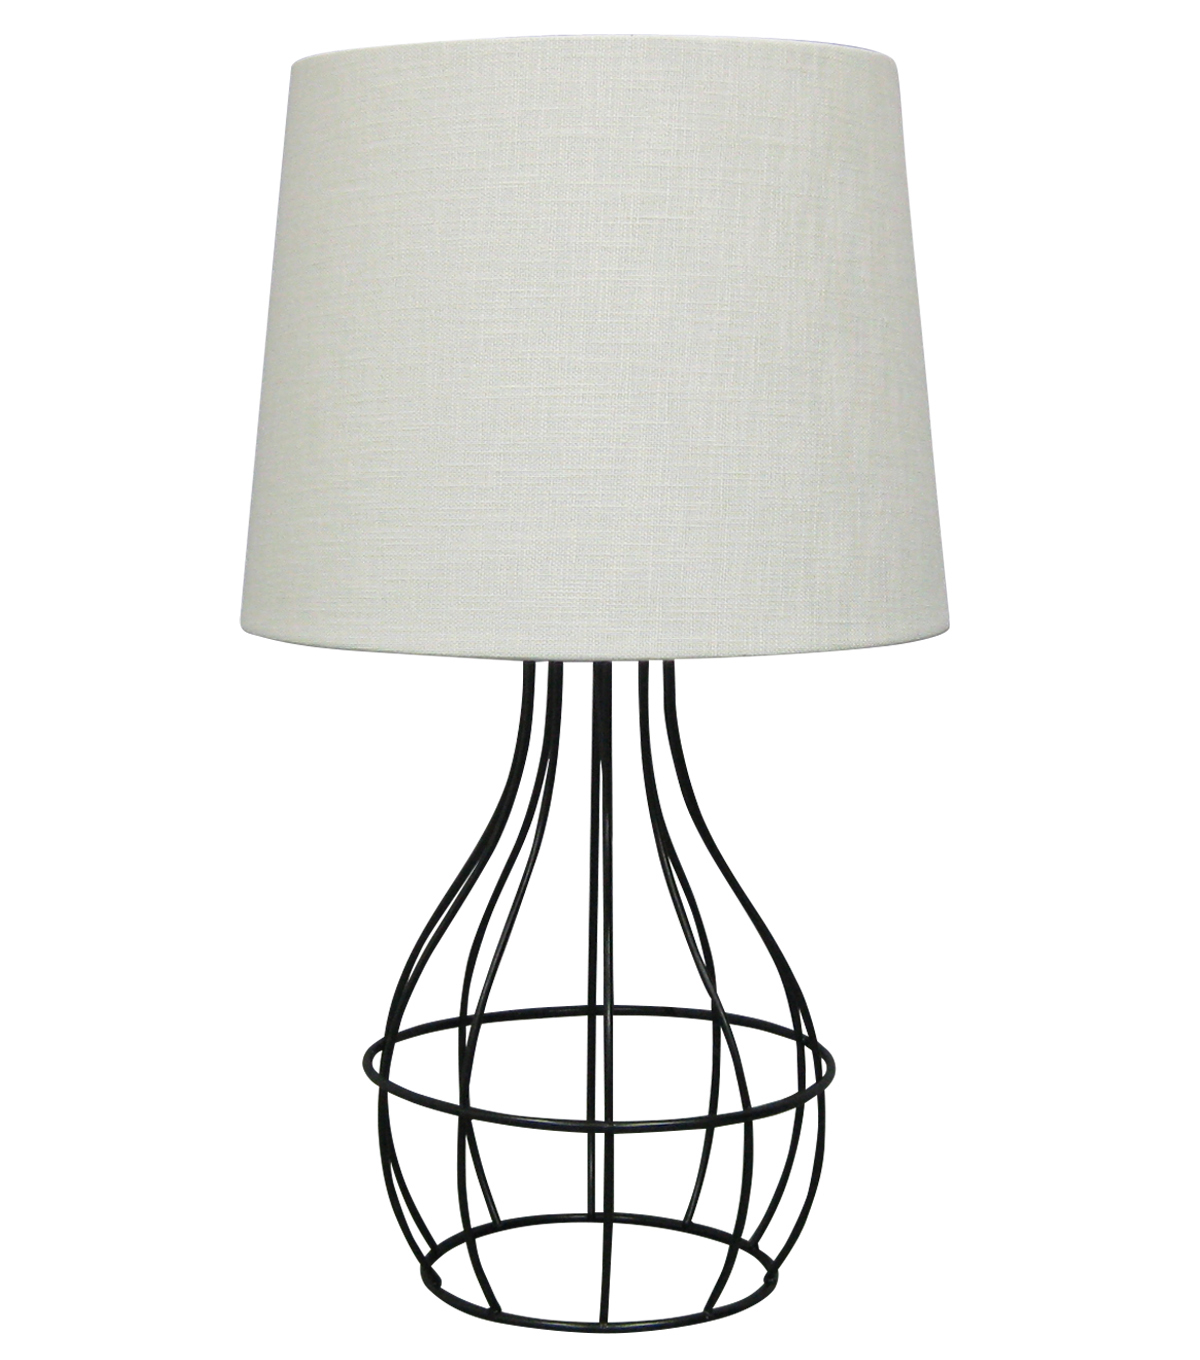 Very Table Lamps Without Wires - Lamp Design Ideas VO16